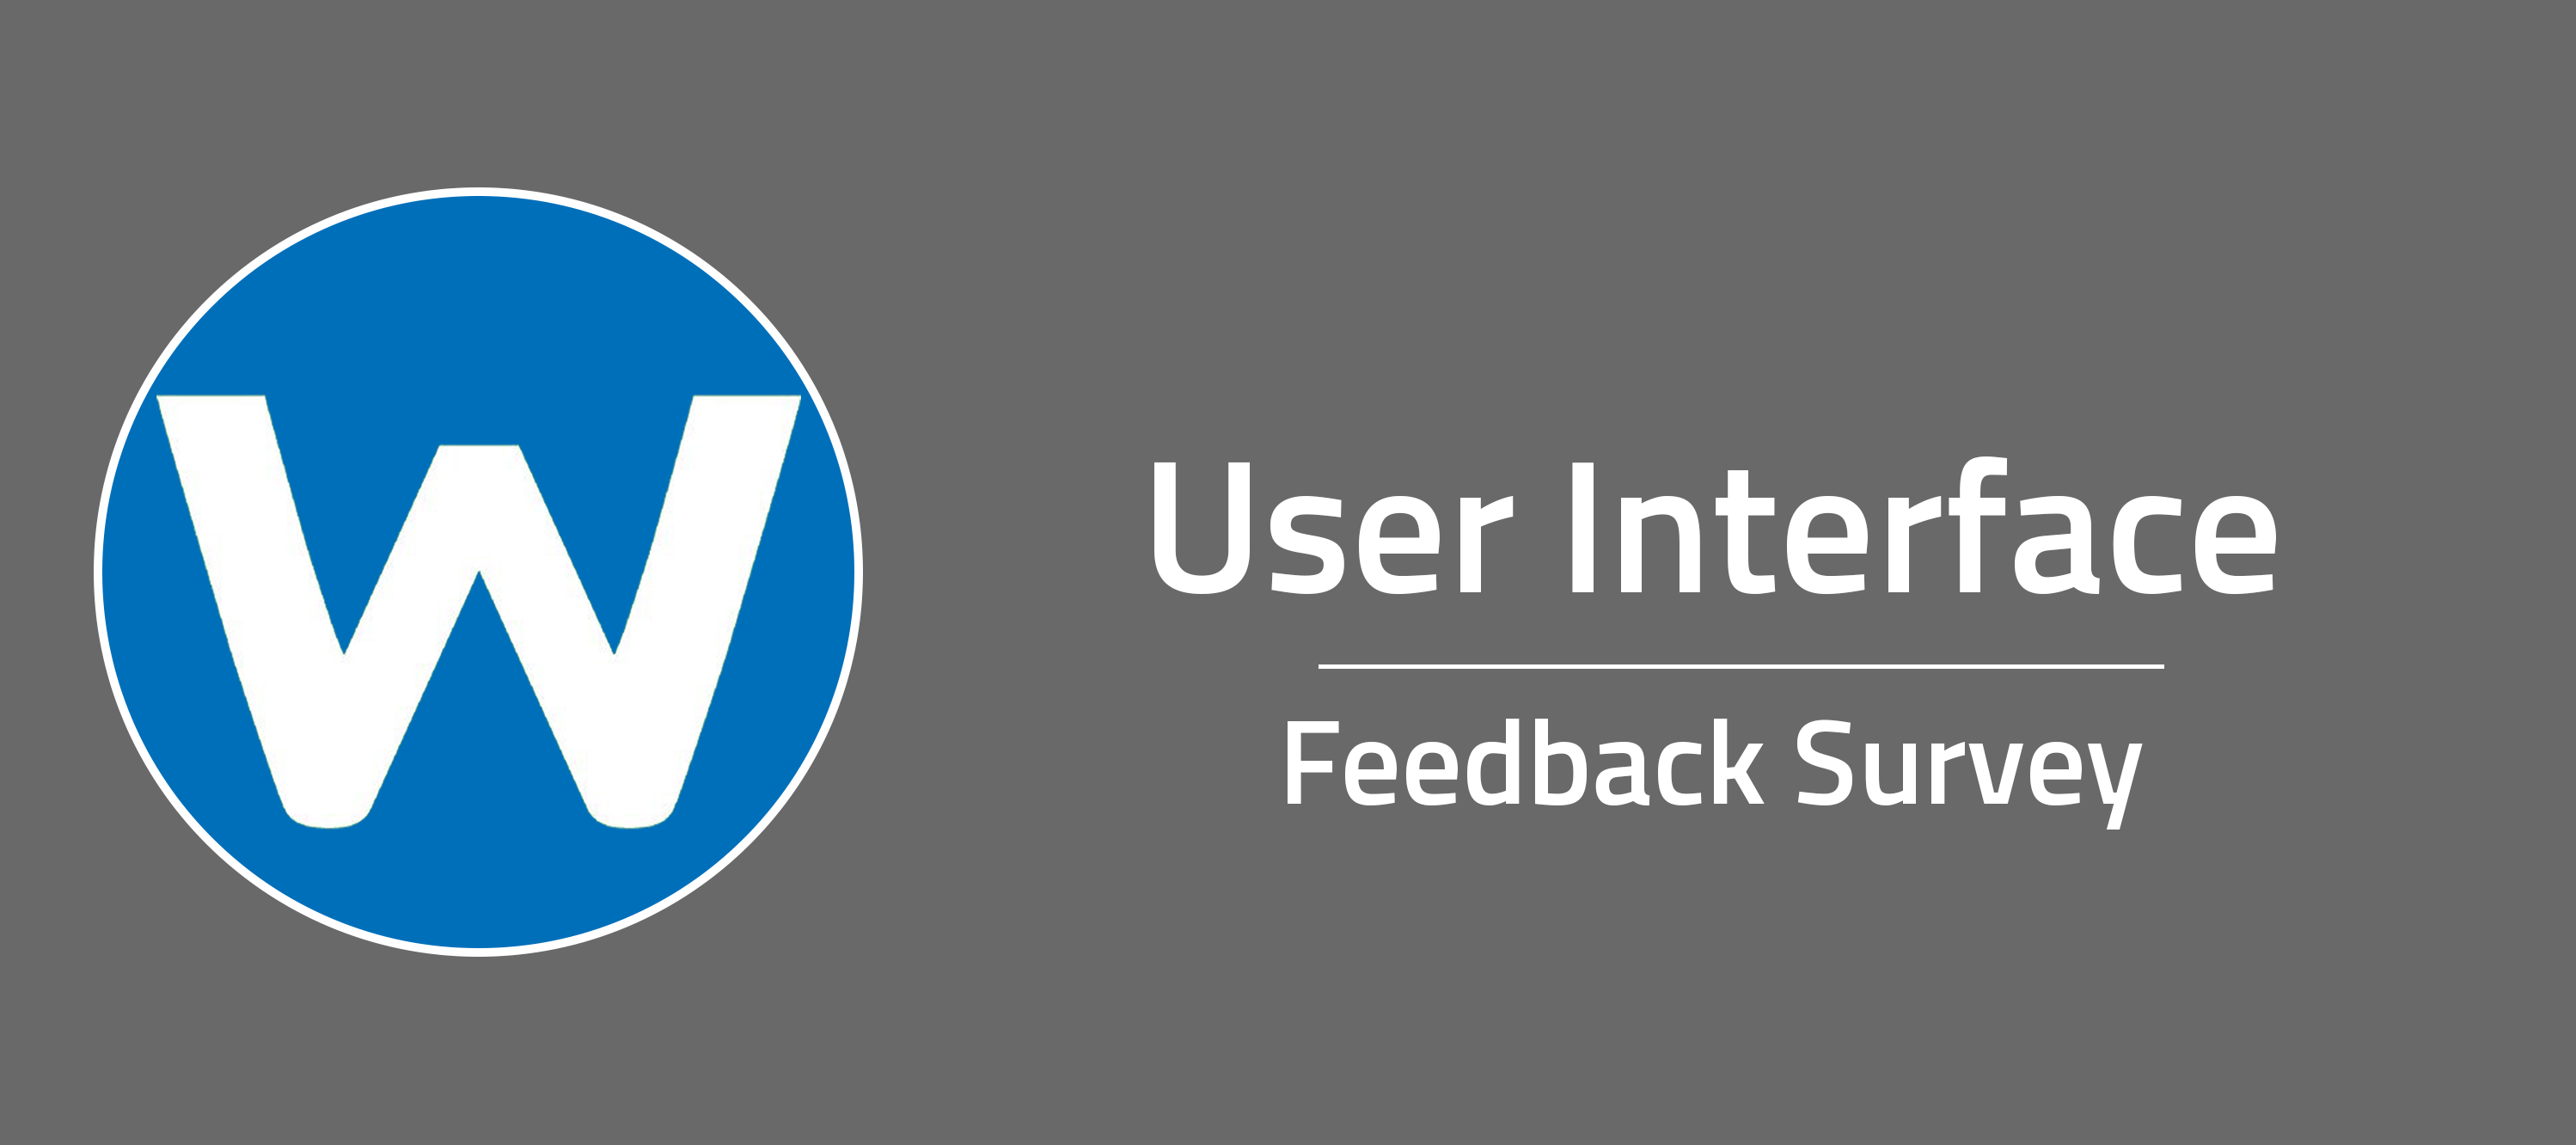 User Interface Feedback Survey